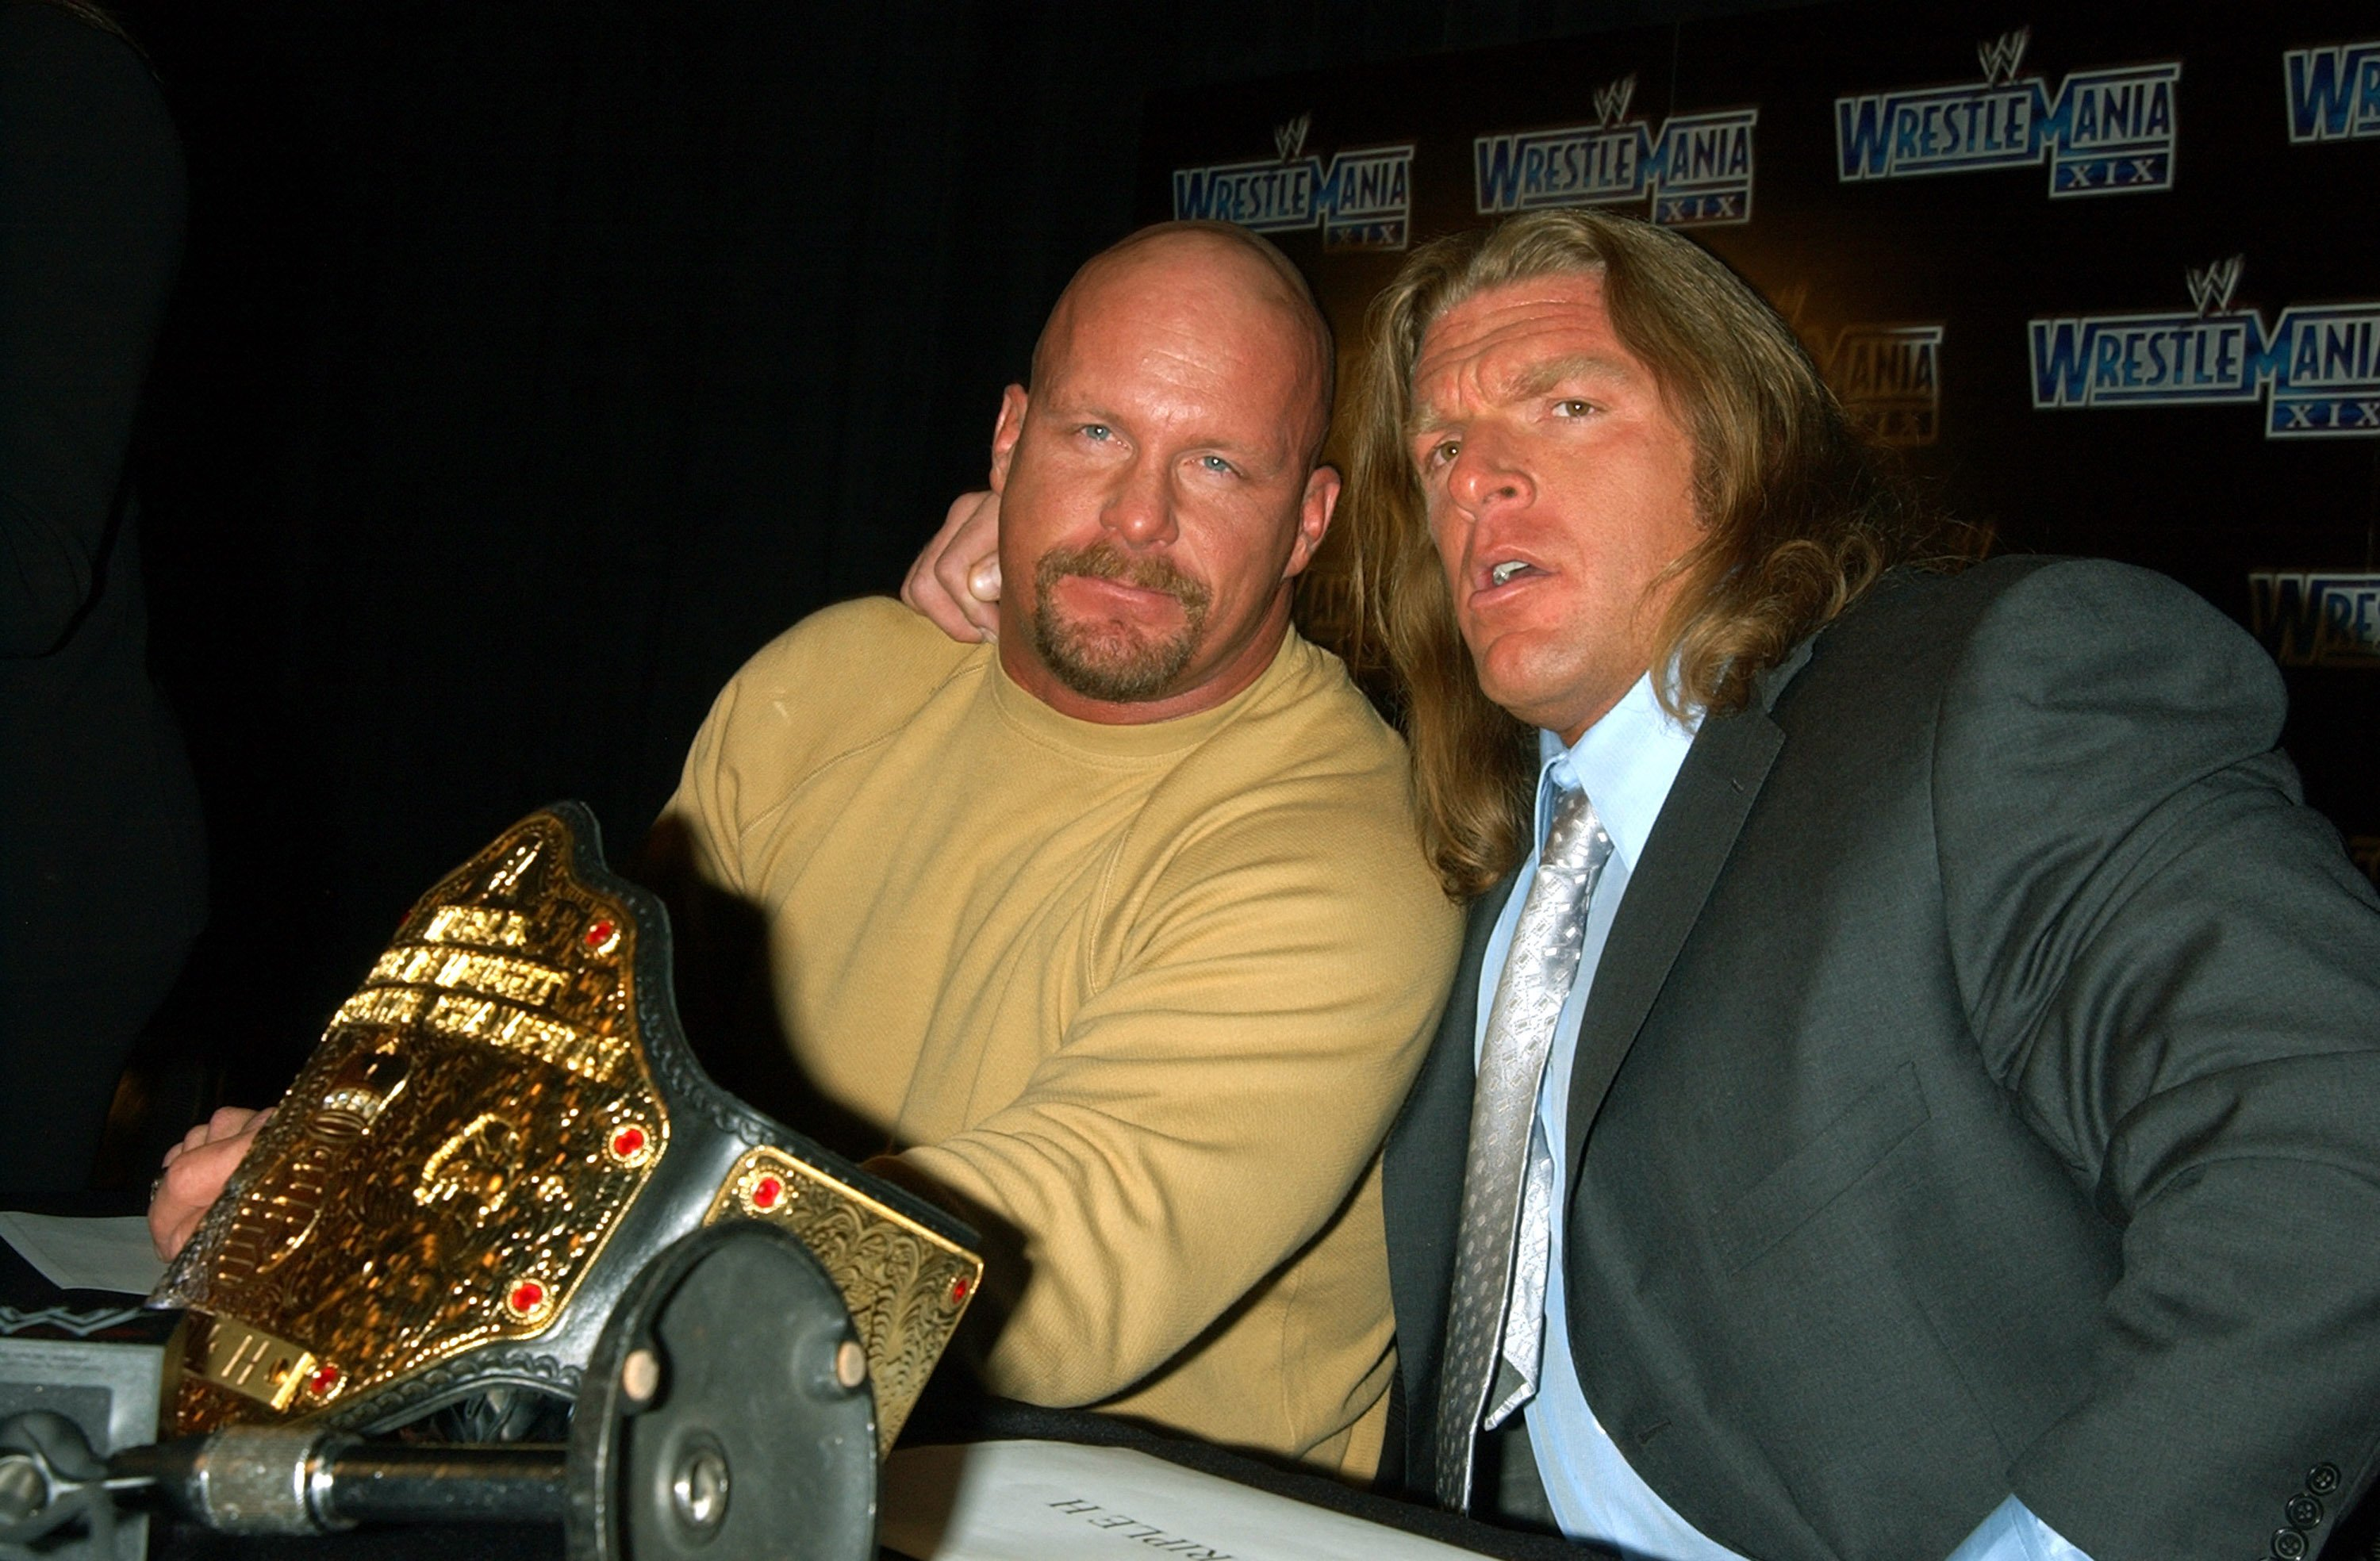 Stone Cold Steve Austin Gives His Prediction On Triple H V The